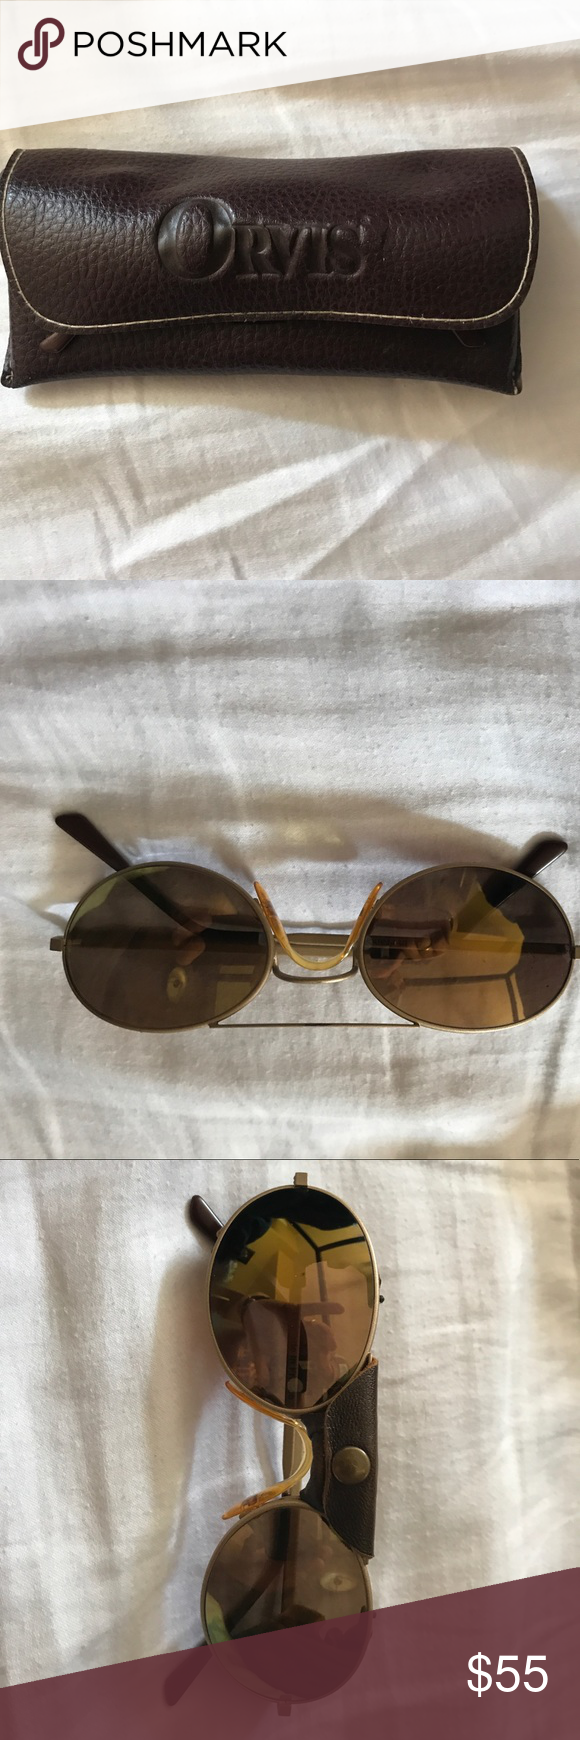 d002625d84 Orvis Polarized Flyfishing sunglasses Excellent condition. Comes with  removable leather side shields and nose shield. Very expensive shades when  they were ...